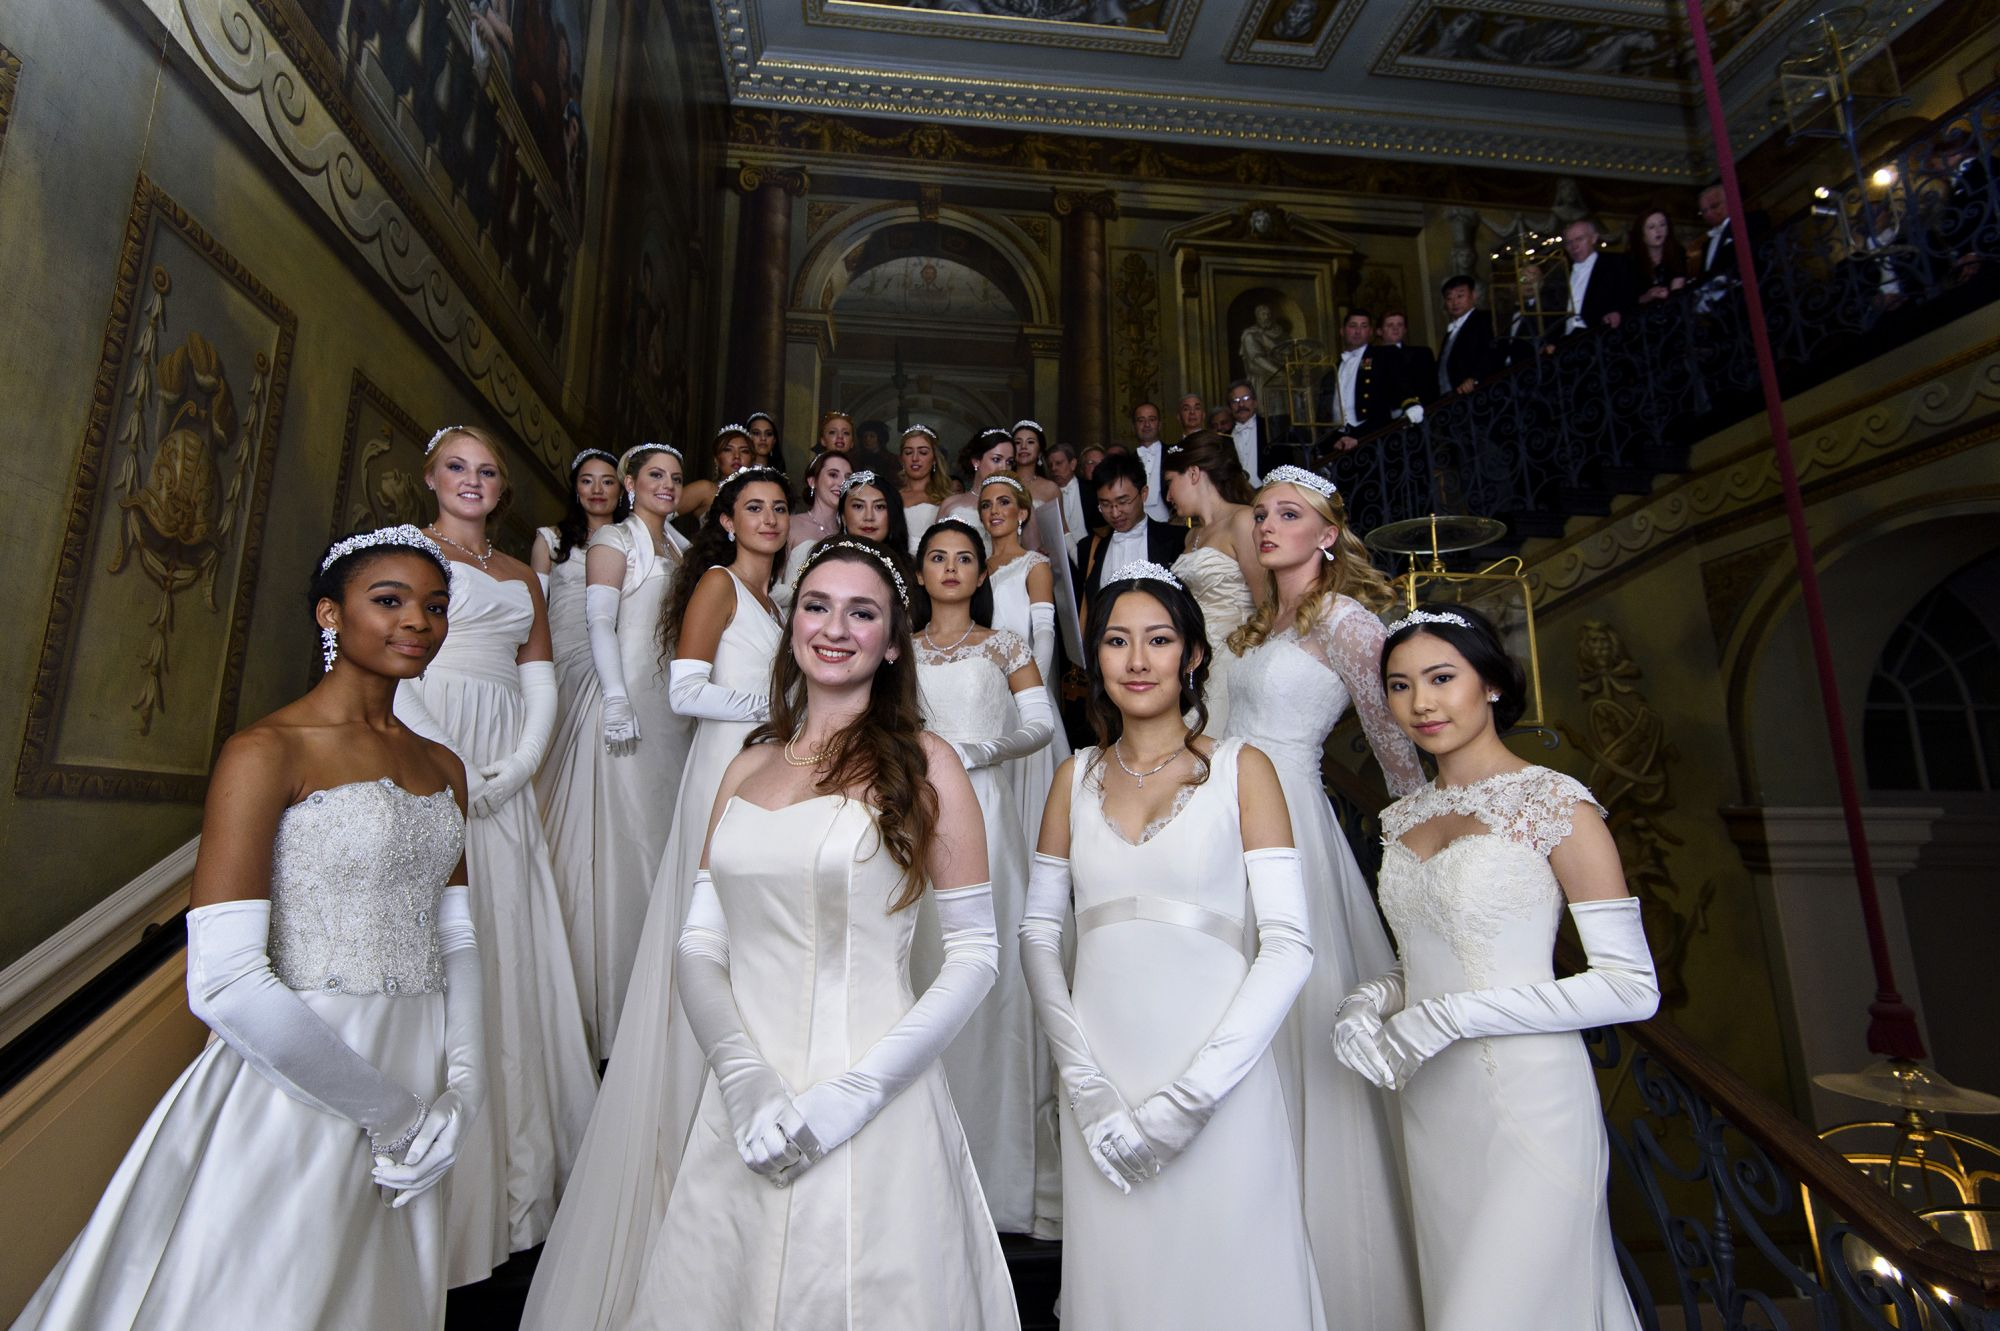 Debutantes and their farthers pose ahead of the Queen Charlotte Ball on September 11, 2015 (Photo credit: The London Season official website)